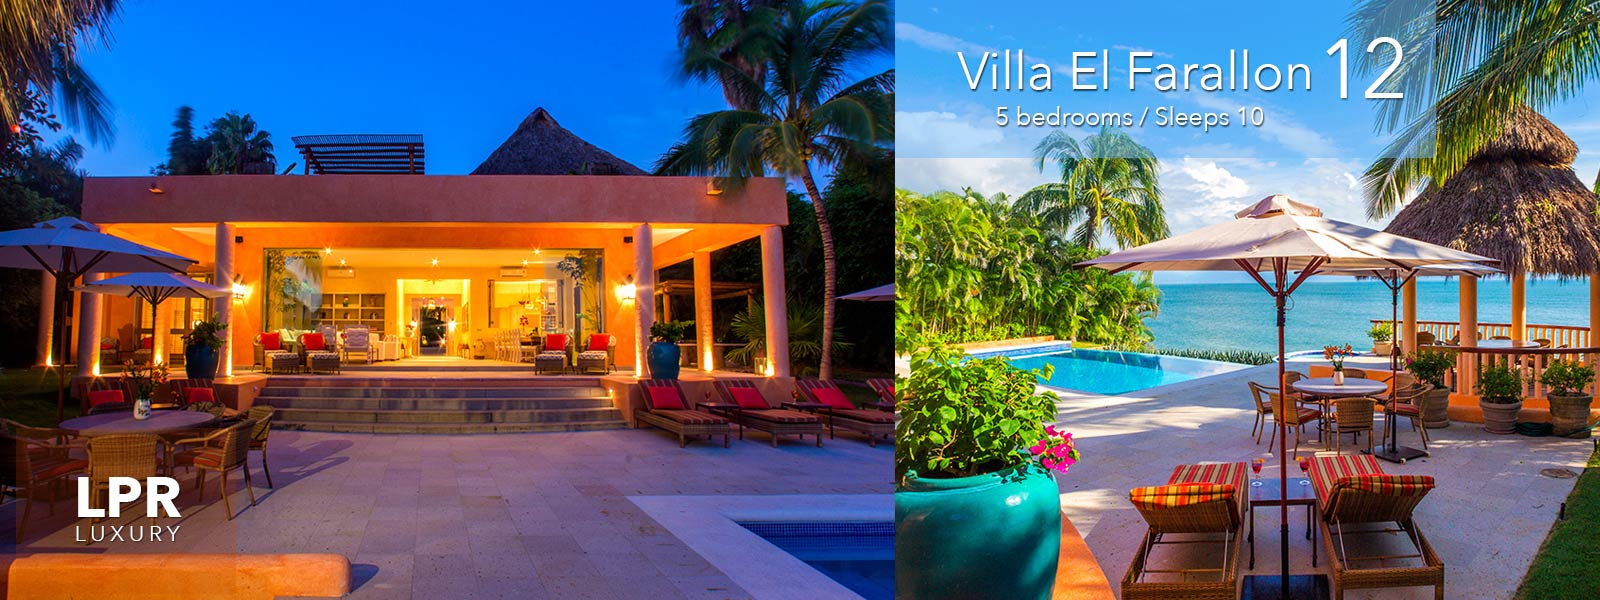 Villa El Farallon 12 - Luxury Punta Mita Rentals and Real Estate - Vallarta | Nayarit, Mexico